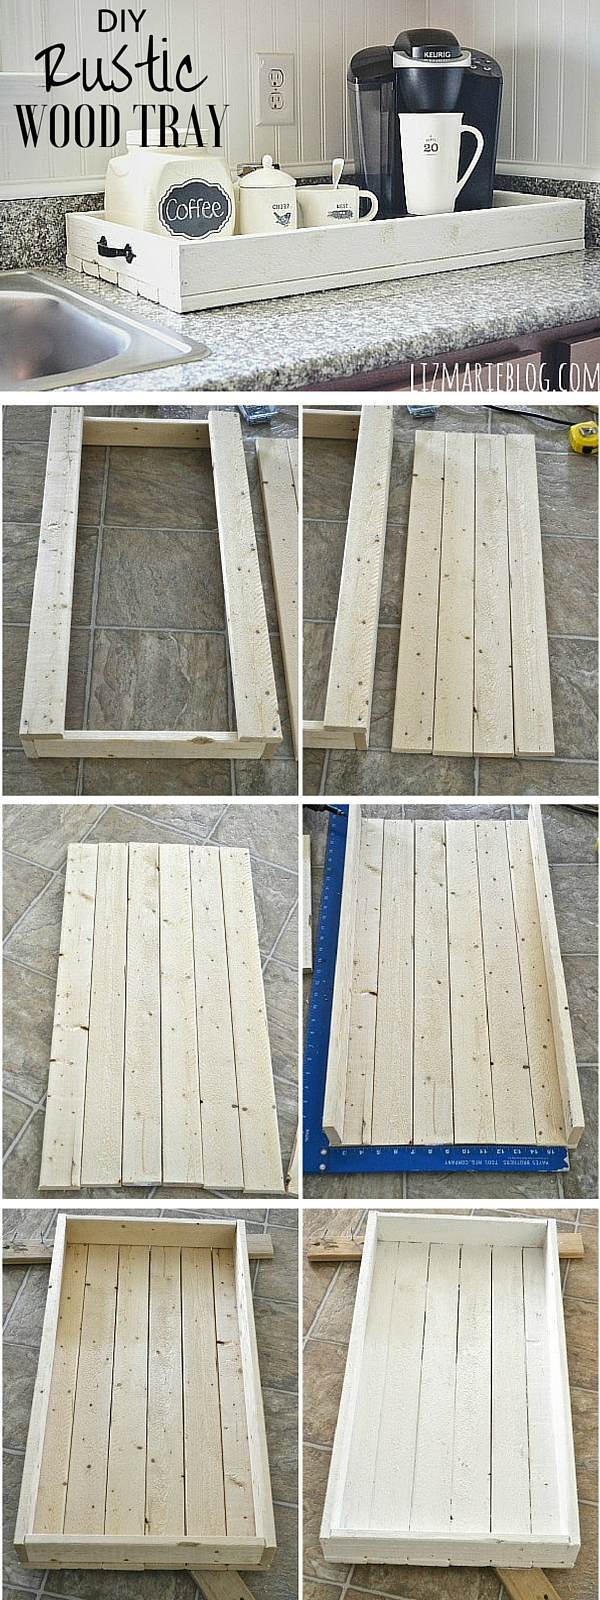 Check out the tutorial: #DIY Rustic Wood Tray